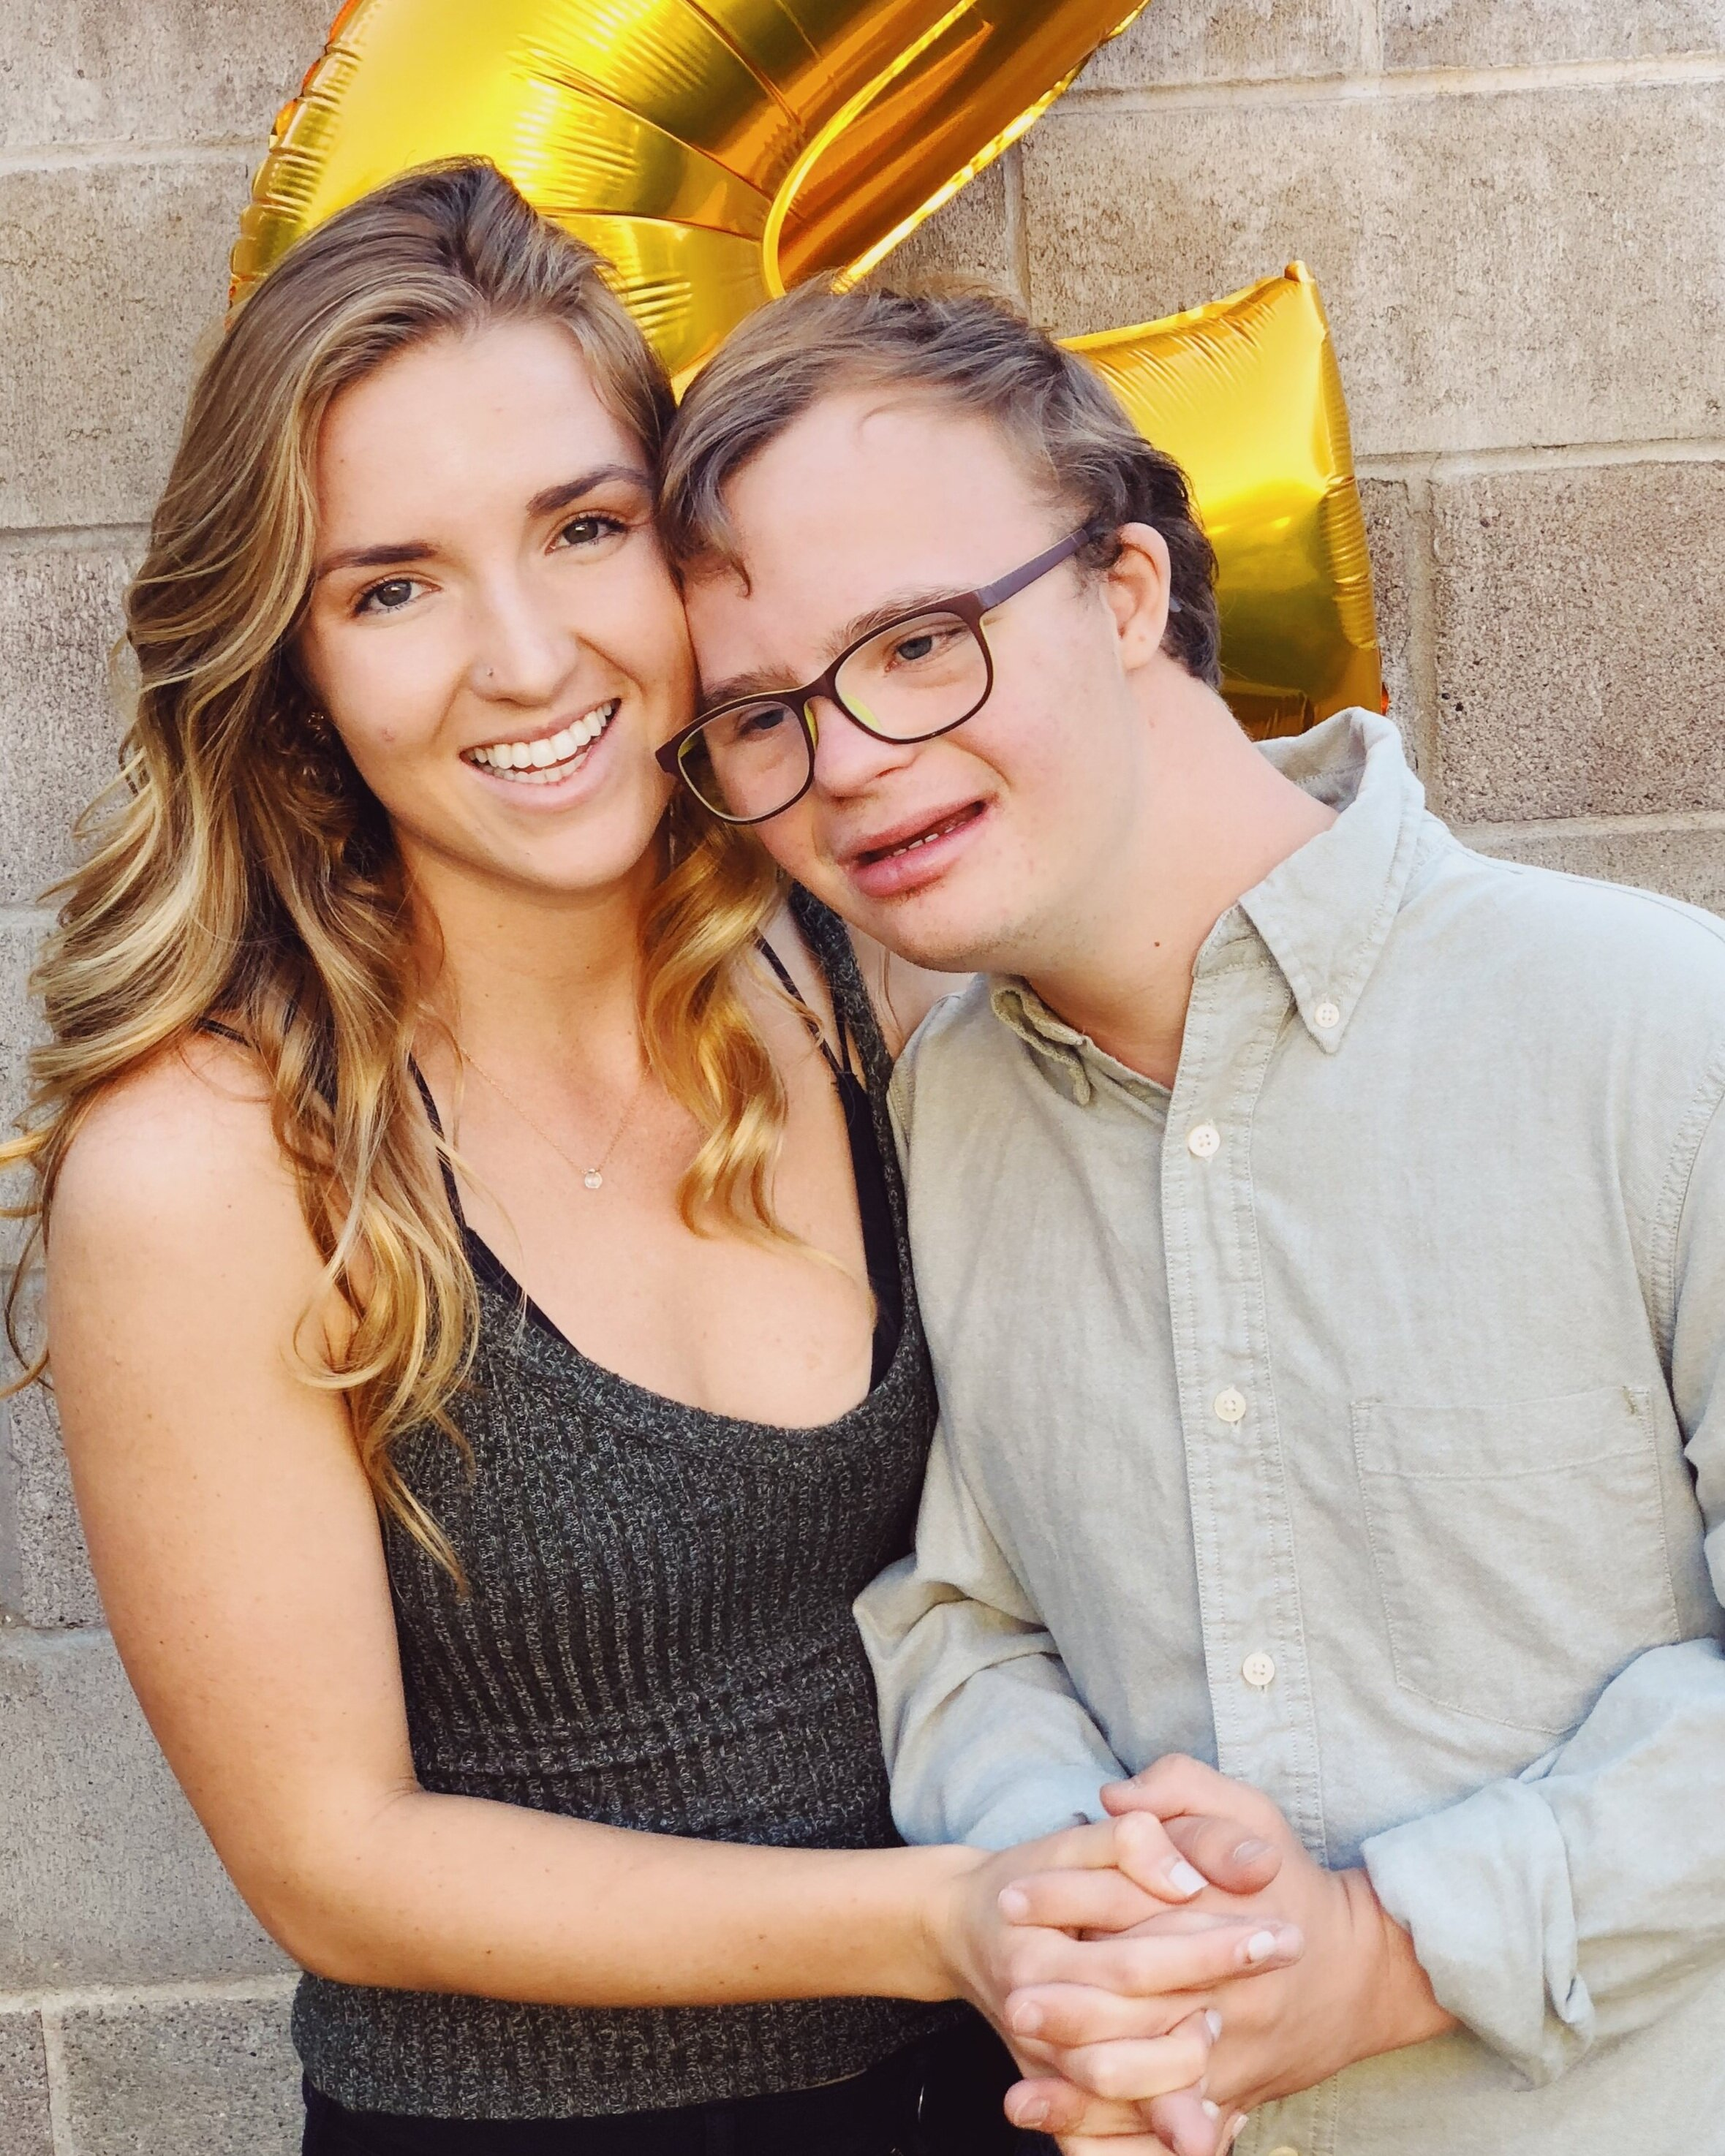 Our Mission - Hello! I'm Julia, and welcome to Beyond the Waves! My twin brother Michael was my inspiration to make this website. Michael is on the severe side of Down Syndrome, and is completely non-verbal. However, that doesn't stop him from enlightening those around him with his kindness and love.My mission is to share the lessons I've learned in Self-Love through growing up with Michael. To provide a means of healing while empowering you to achieve what makes your heart sing. All while revealing the beauty behind each individual who has Down Syndrome.Learn More